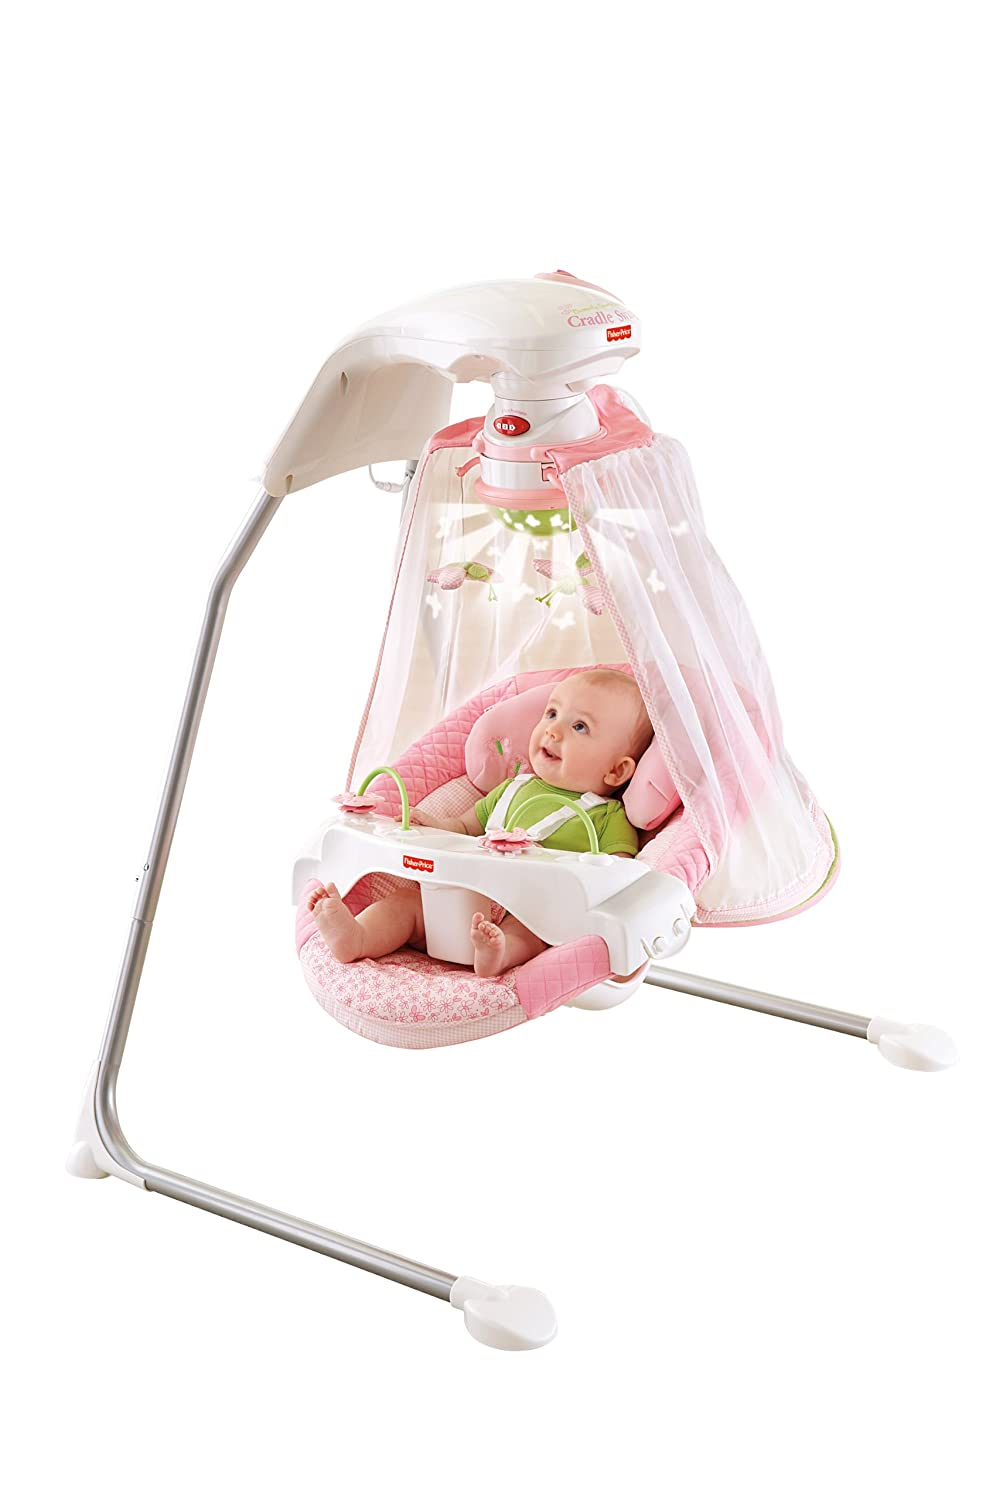 Best Baby Swing Reviews A Comprehensive Buying Guide 2016 Baby Anz Blog Blog For Parent 2016